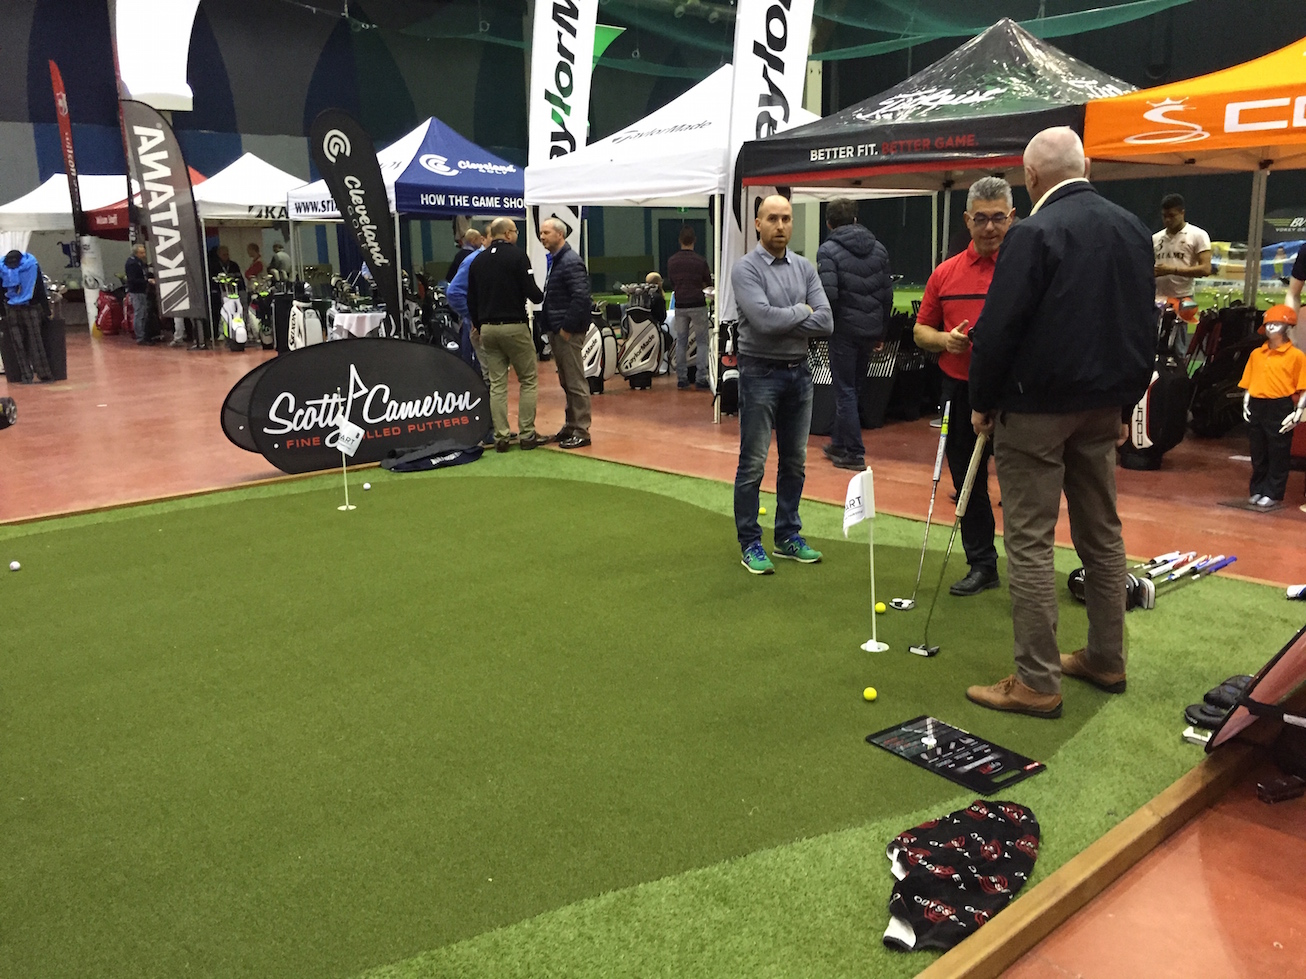 Fiera del Golf Parma 2015 le foto ed i video di Italian Golf Show e le prove dei materiali56 - Fiera del Golf Parma: le foto ed i video di Italian Golf Show